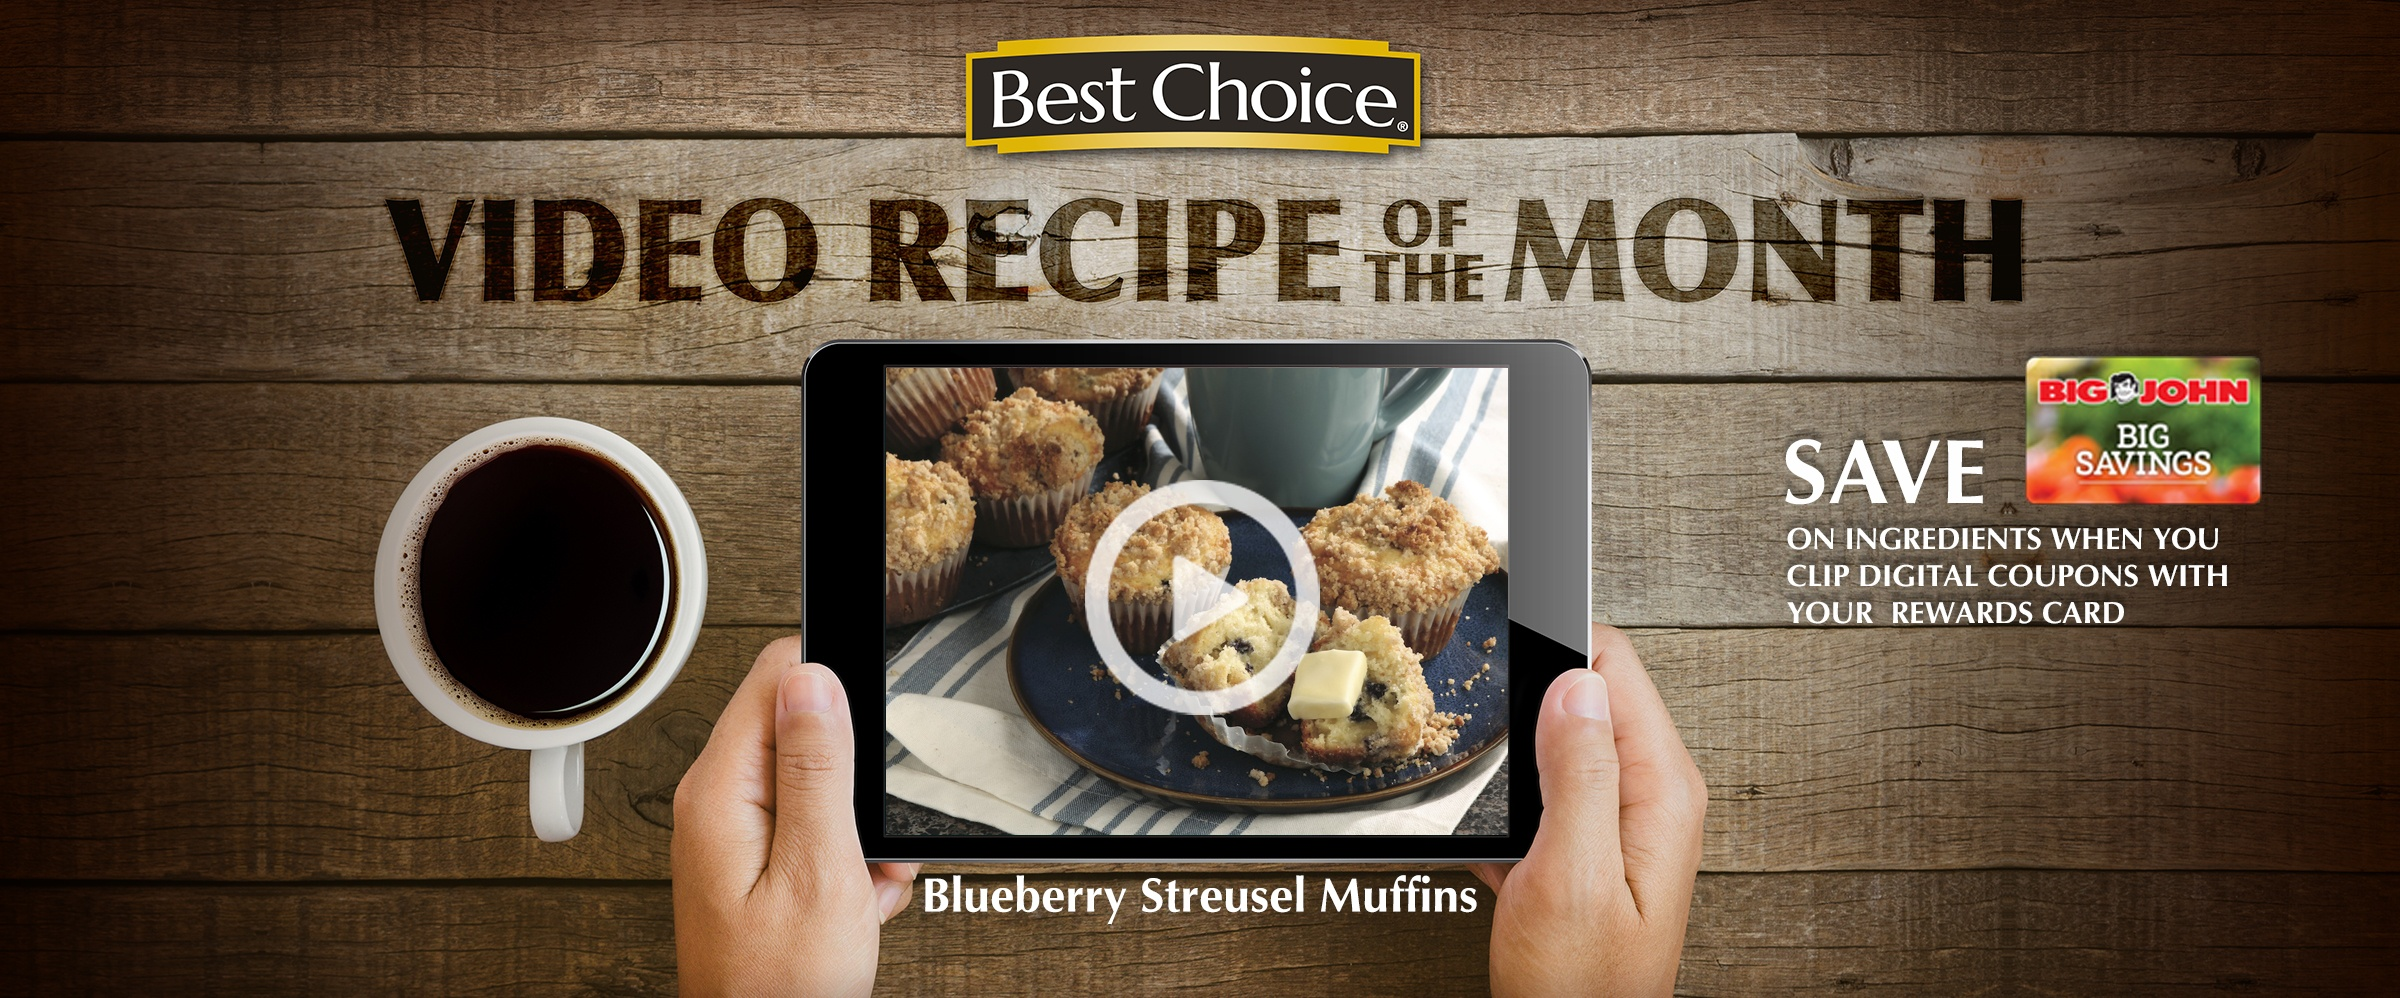 Best Choice Video of the Month - April. Blueberry Streusel Muffins